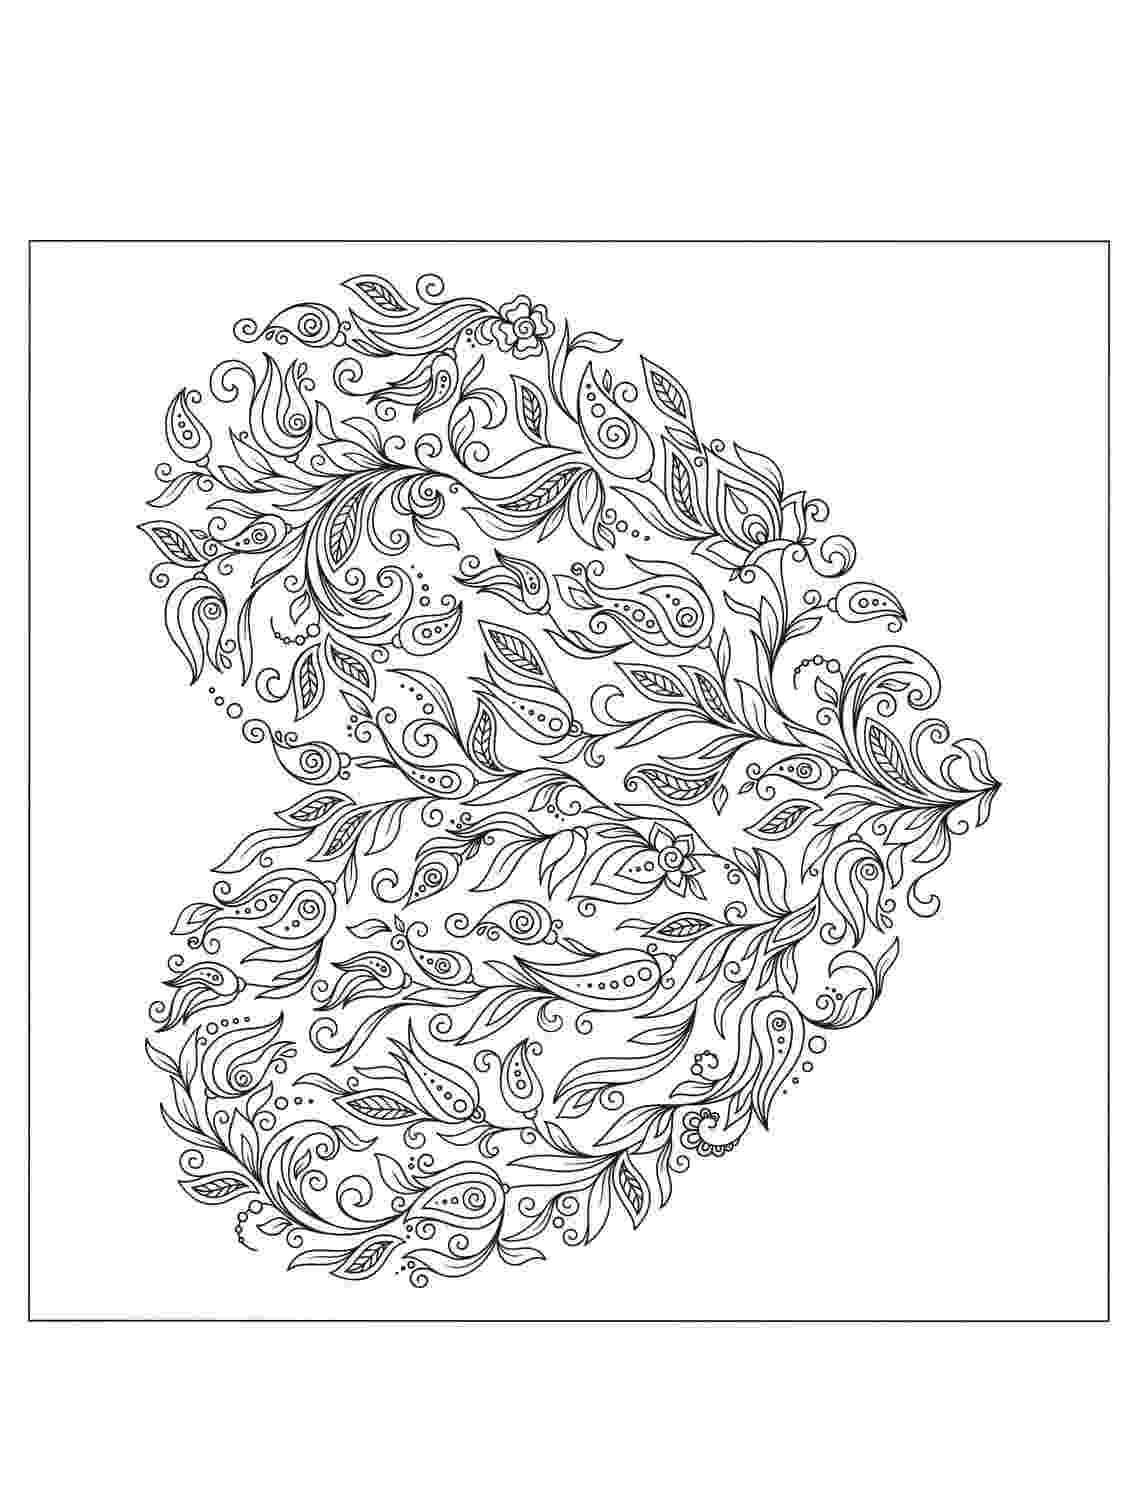 coloring book for adults beautiful day 1435 best images about coloring pages on pinterest adults beautiful coloring for book day